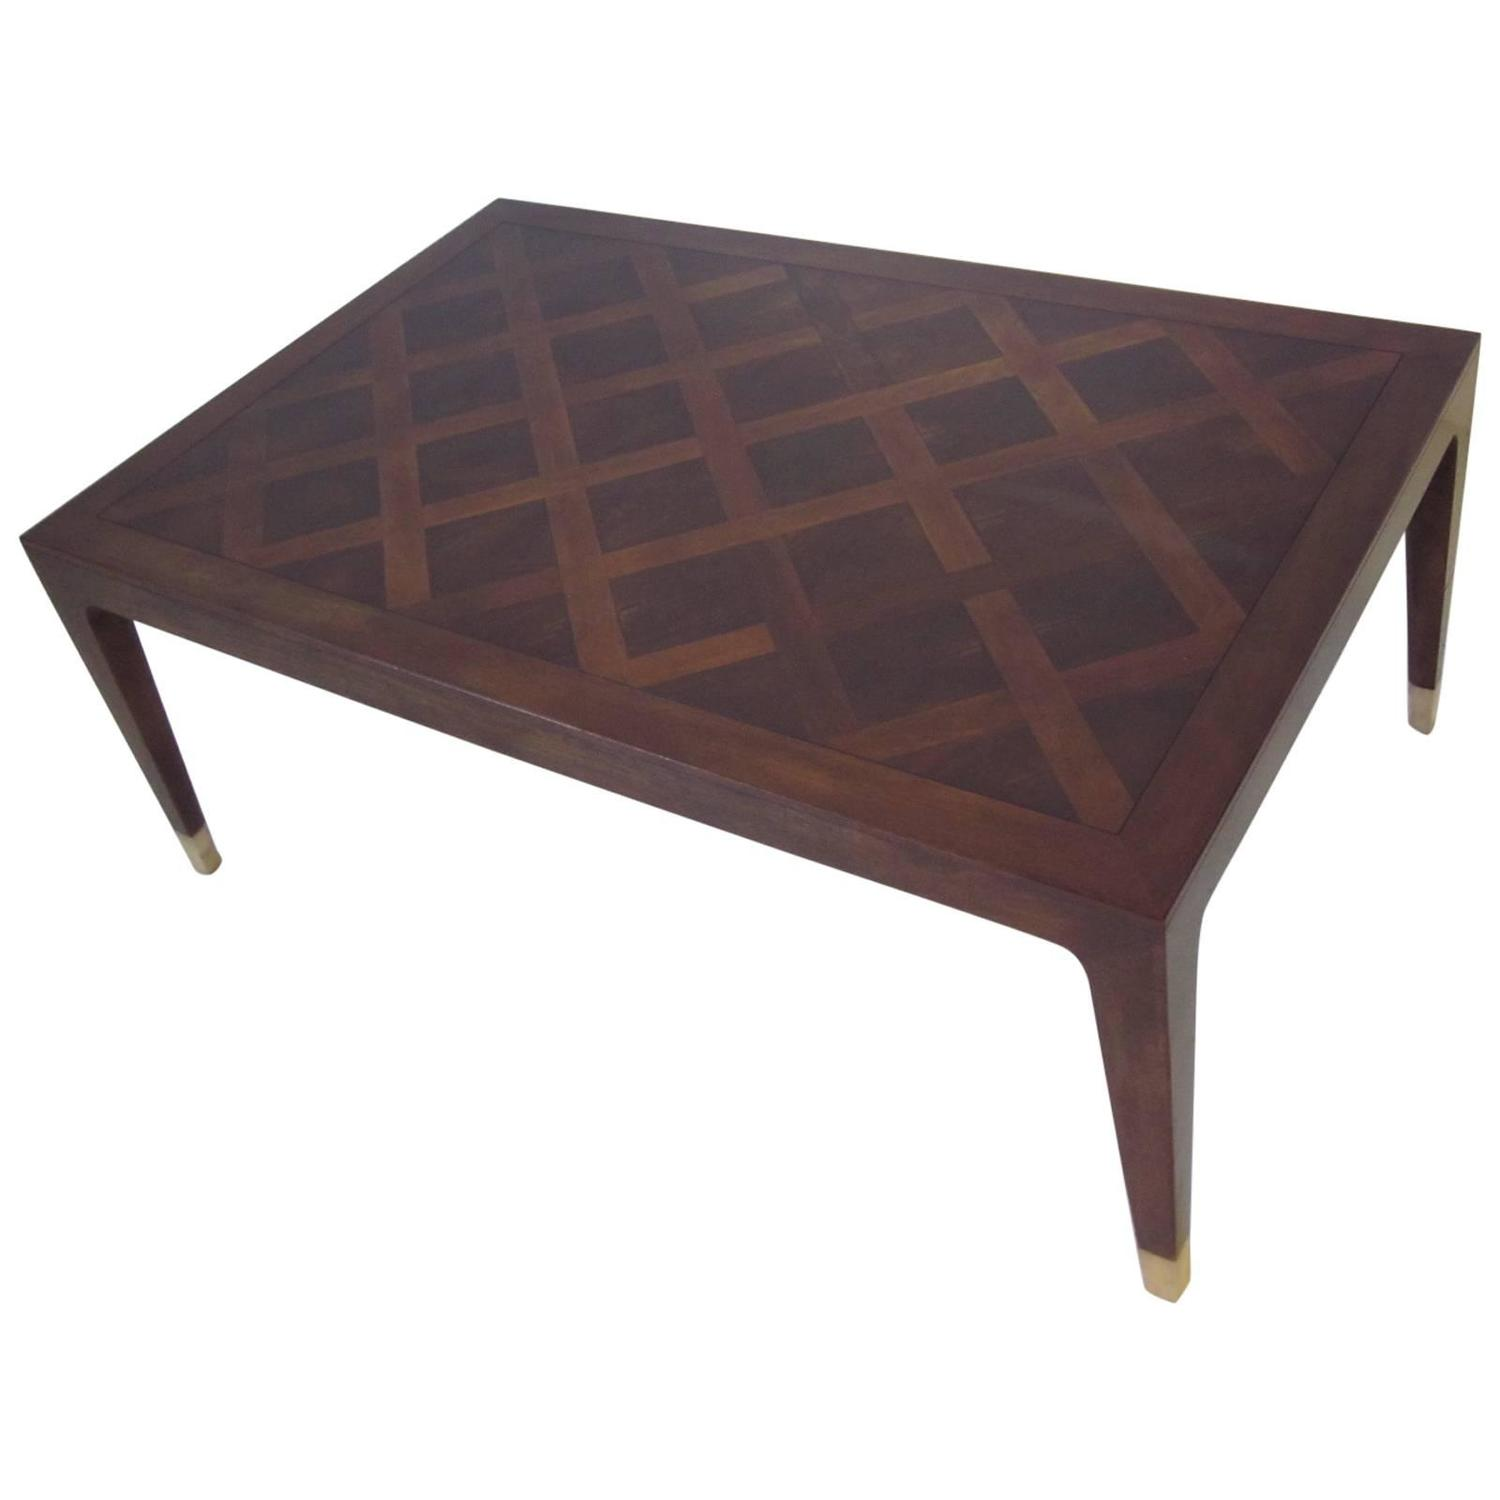 Parquet Styled Mahogany And Walnut Coffee Table In The Manner Of Gio Ponti At 1stdibs